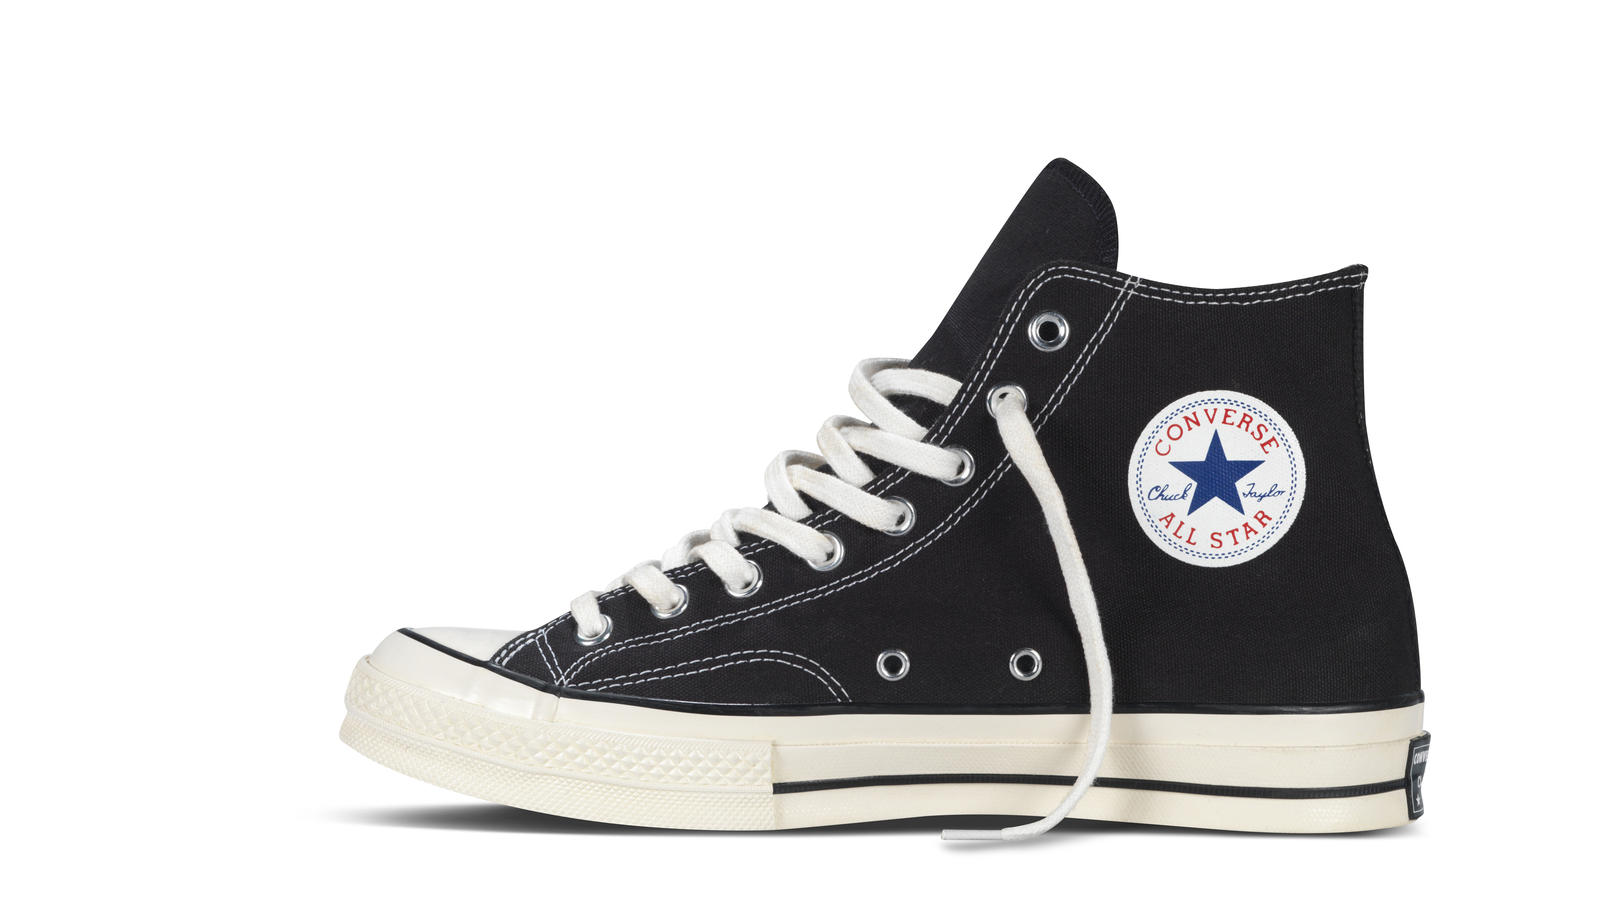 Converse 1970s Chuck Taylor All Star Blackleft Original